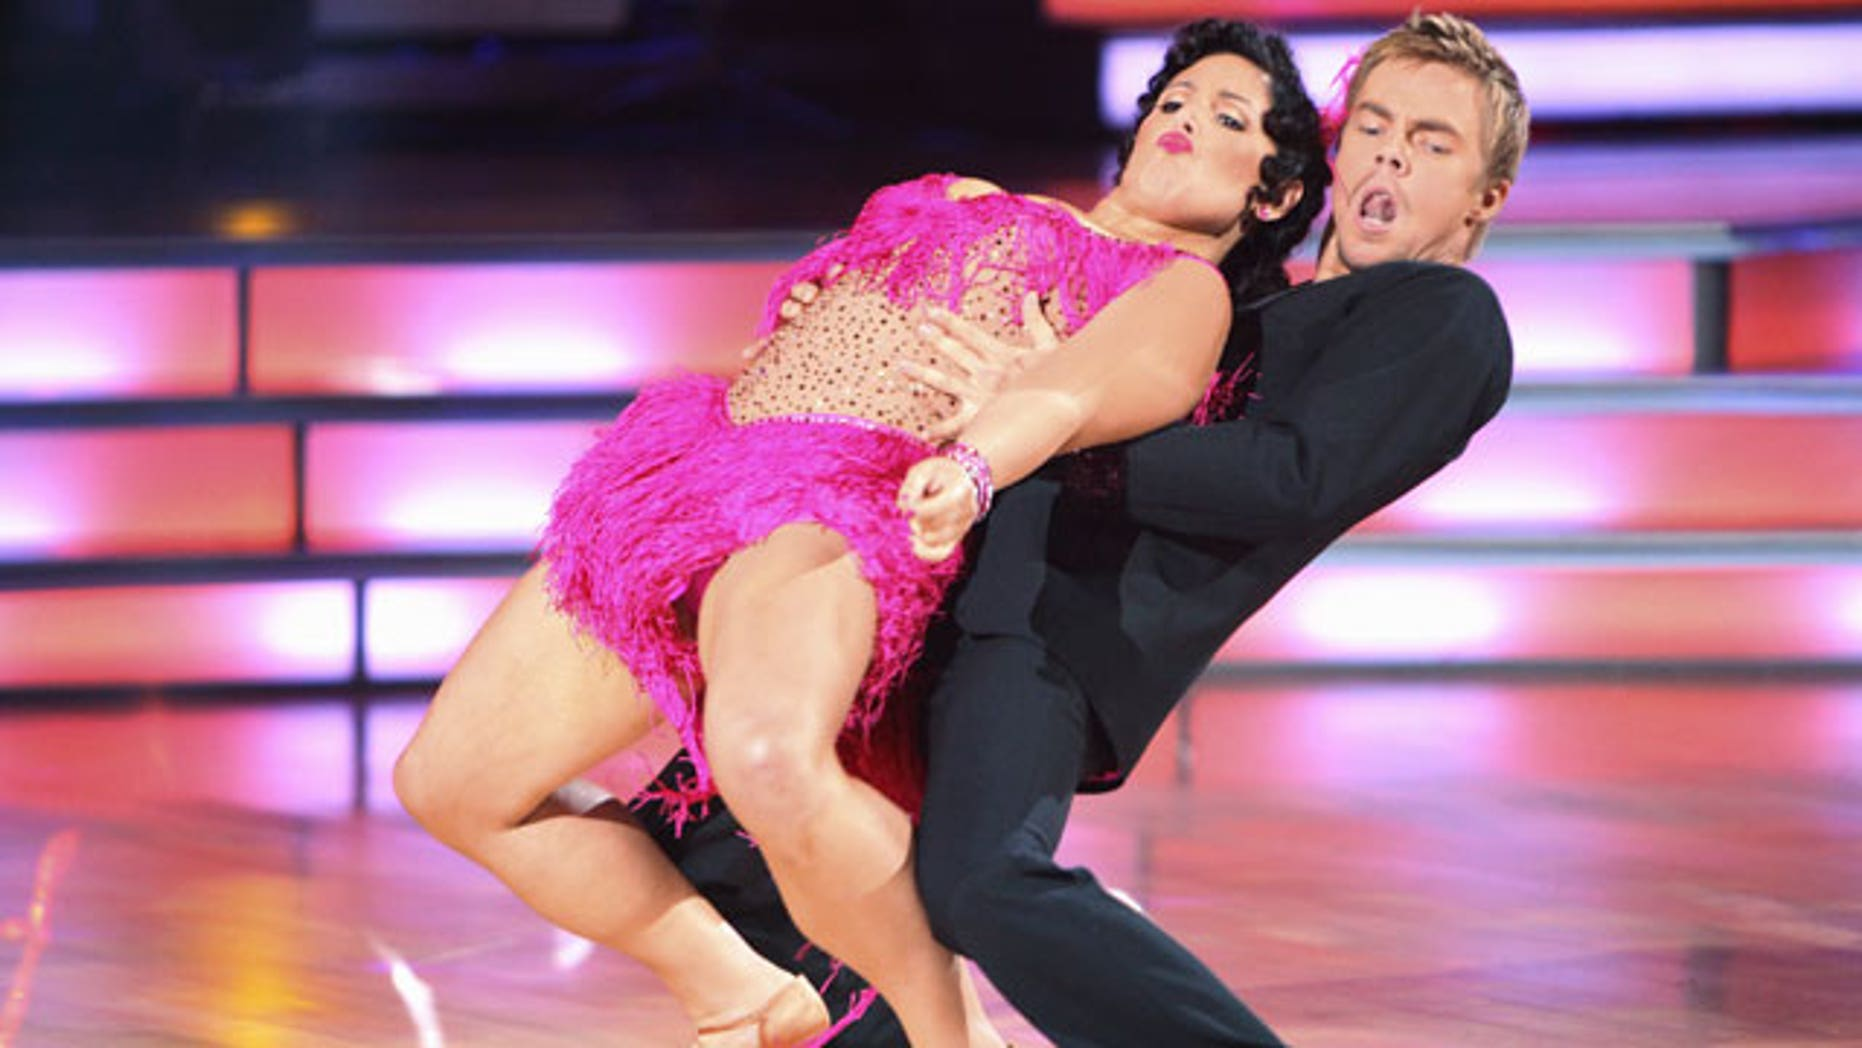 """n this image released by ABC, Ricki Lake, left, and her partner Derek Hough, perform on the celebrity dance competition series, """"Dancing with the Stars."""" (AP)"""